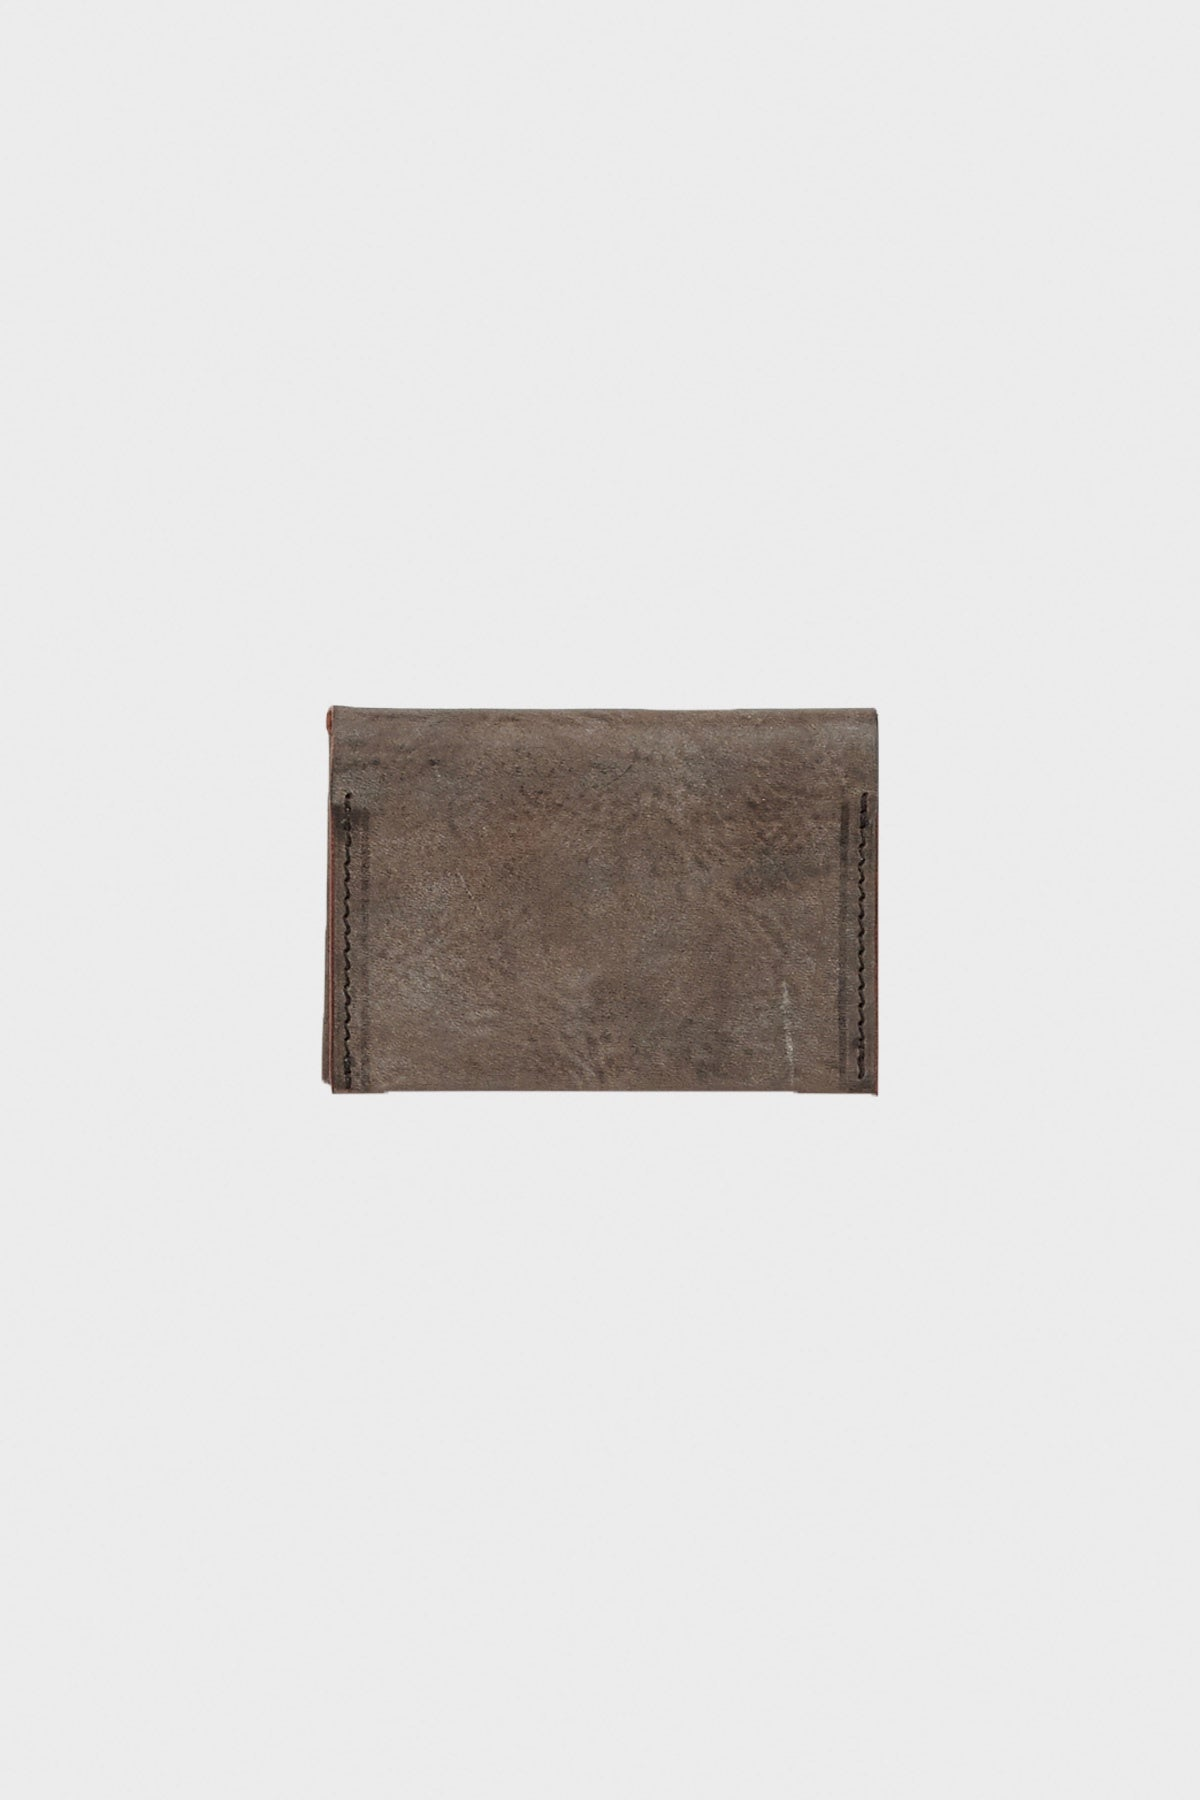 Hender Scheme - Compact Card Case - Chocolate - Canoe Club